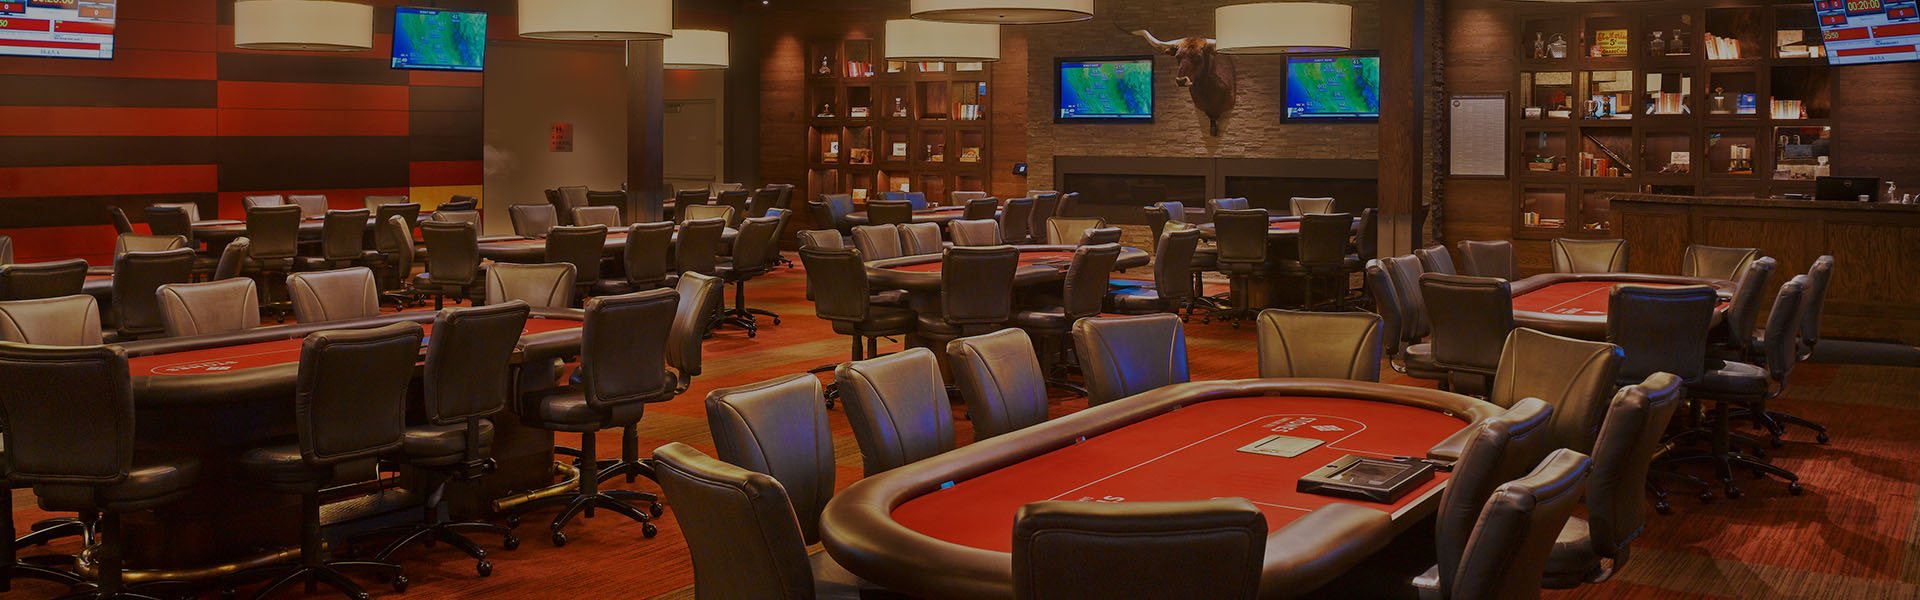 Poker Seating